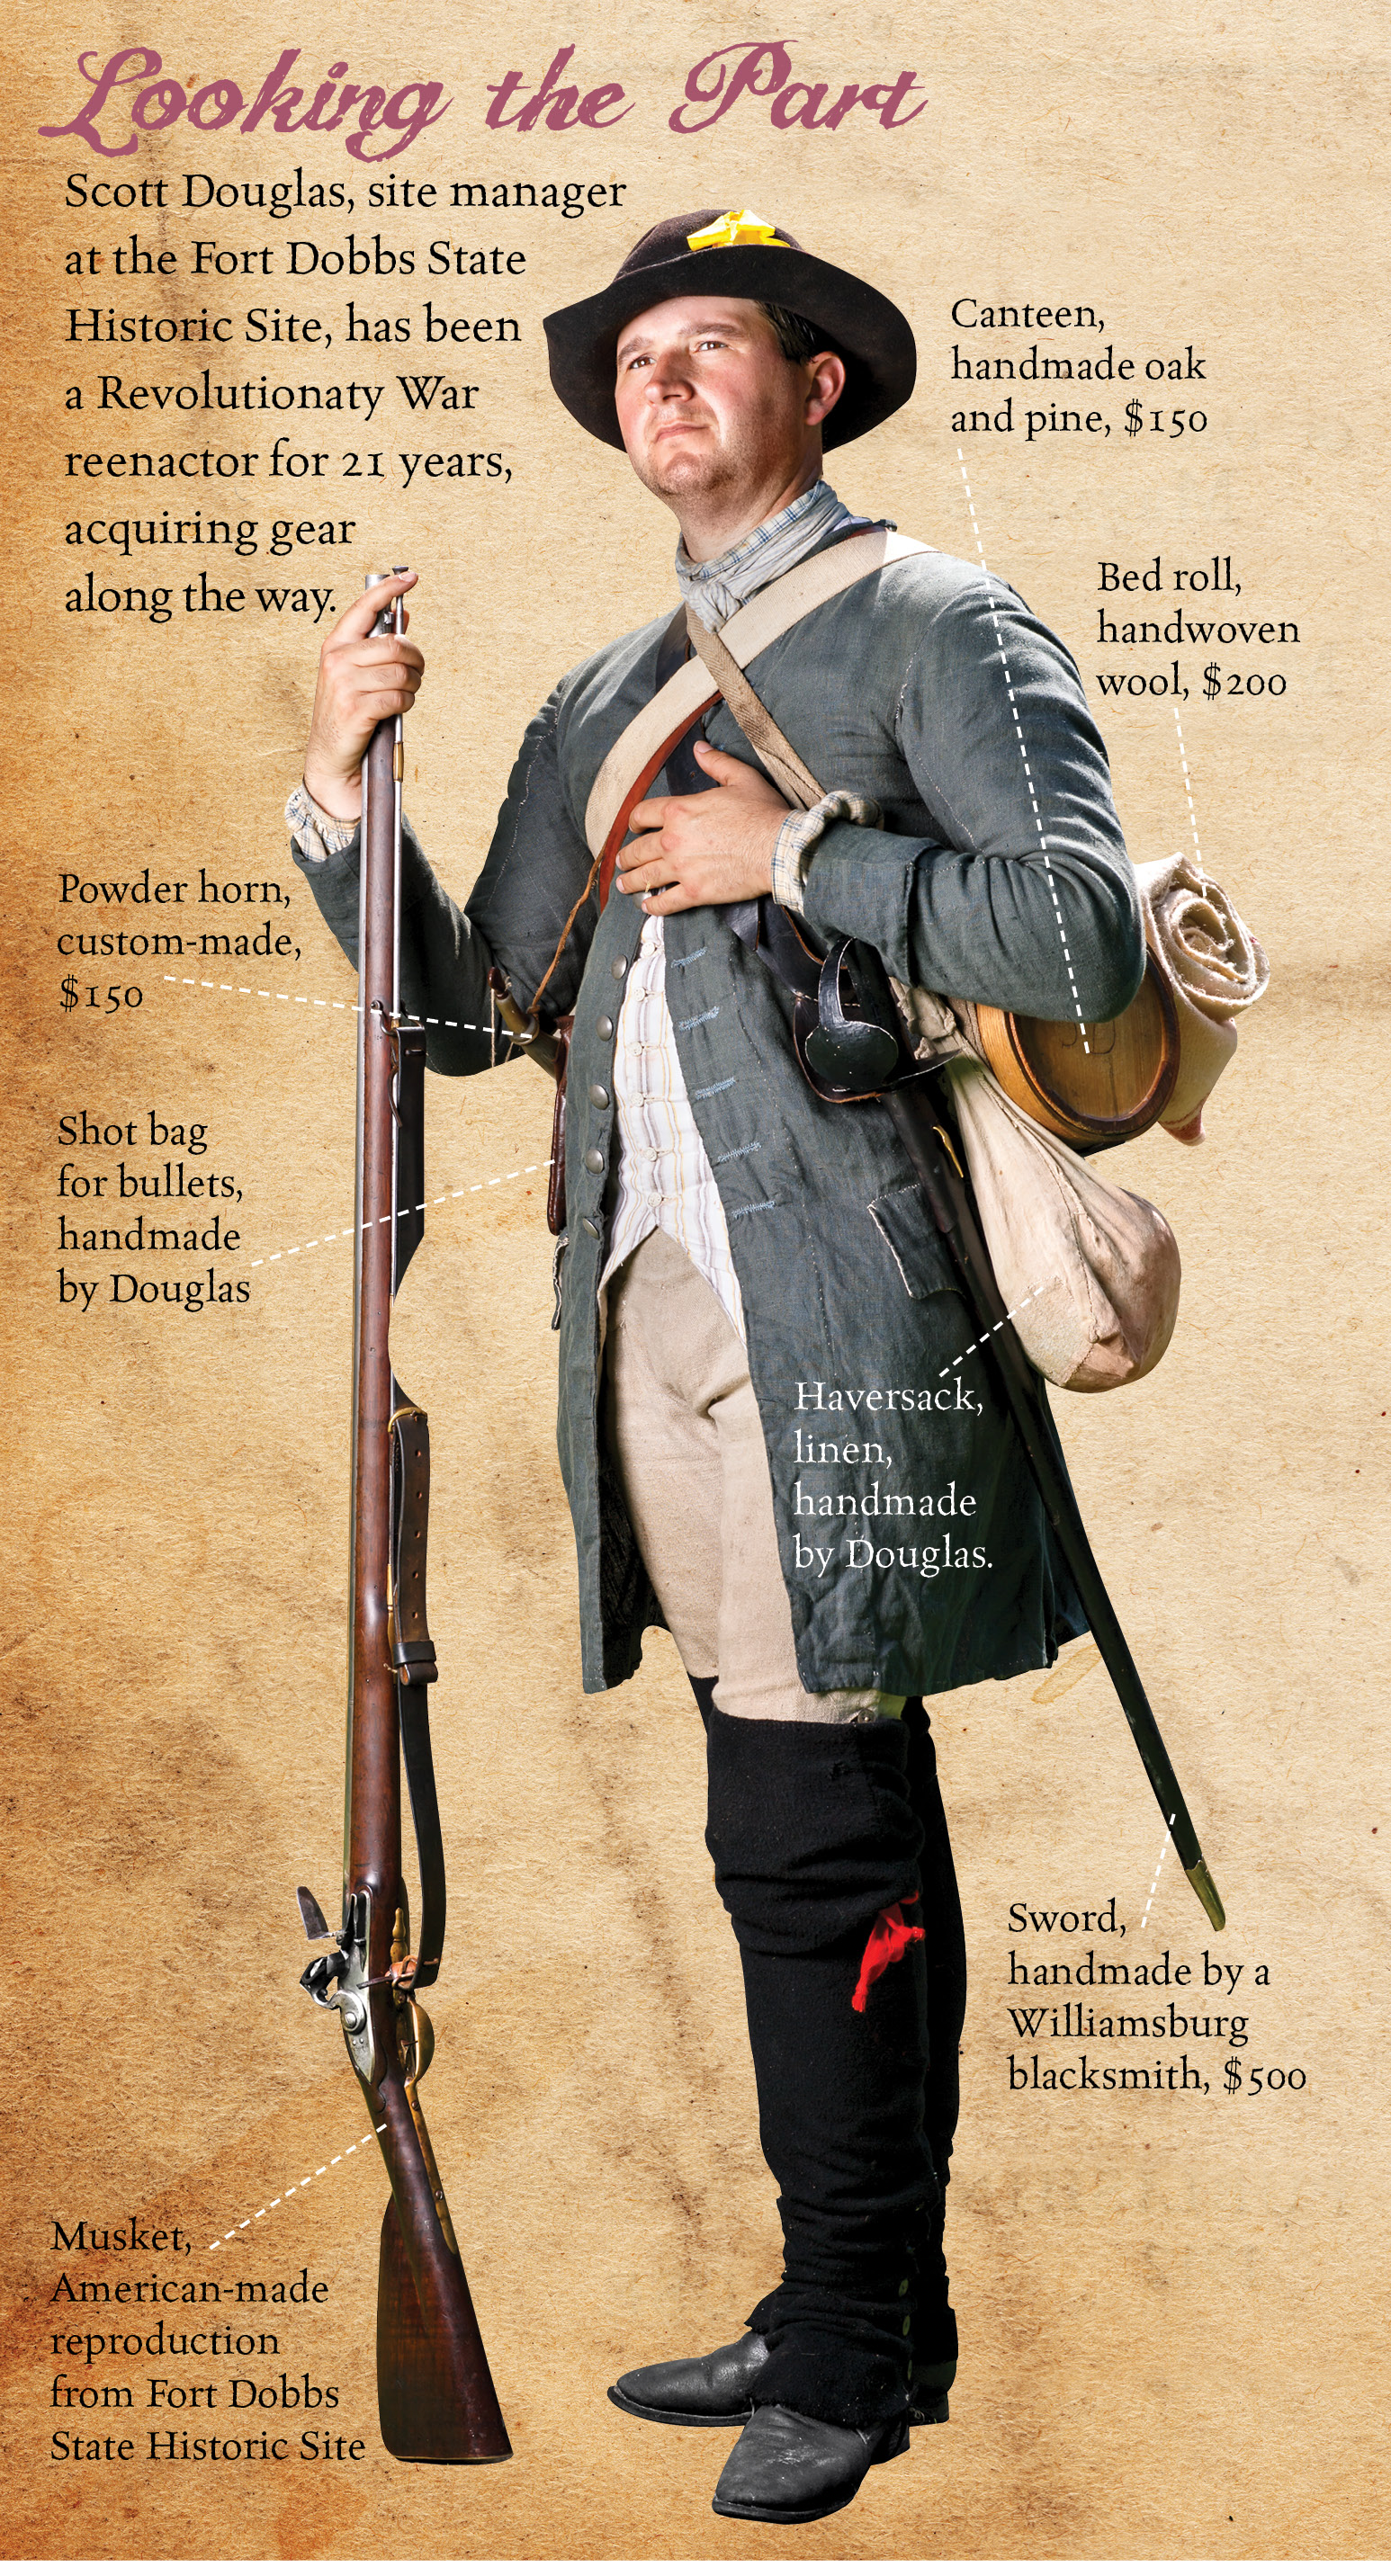 Reenactors Go All-in to Bring the Past to Life - Carolina